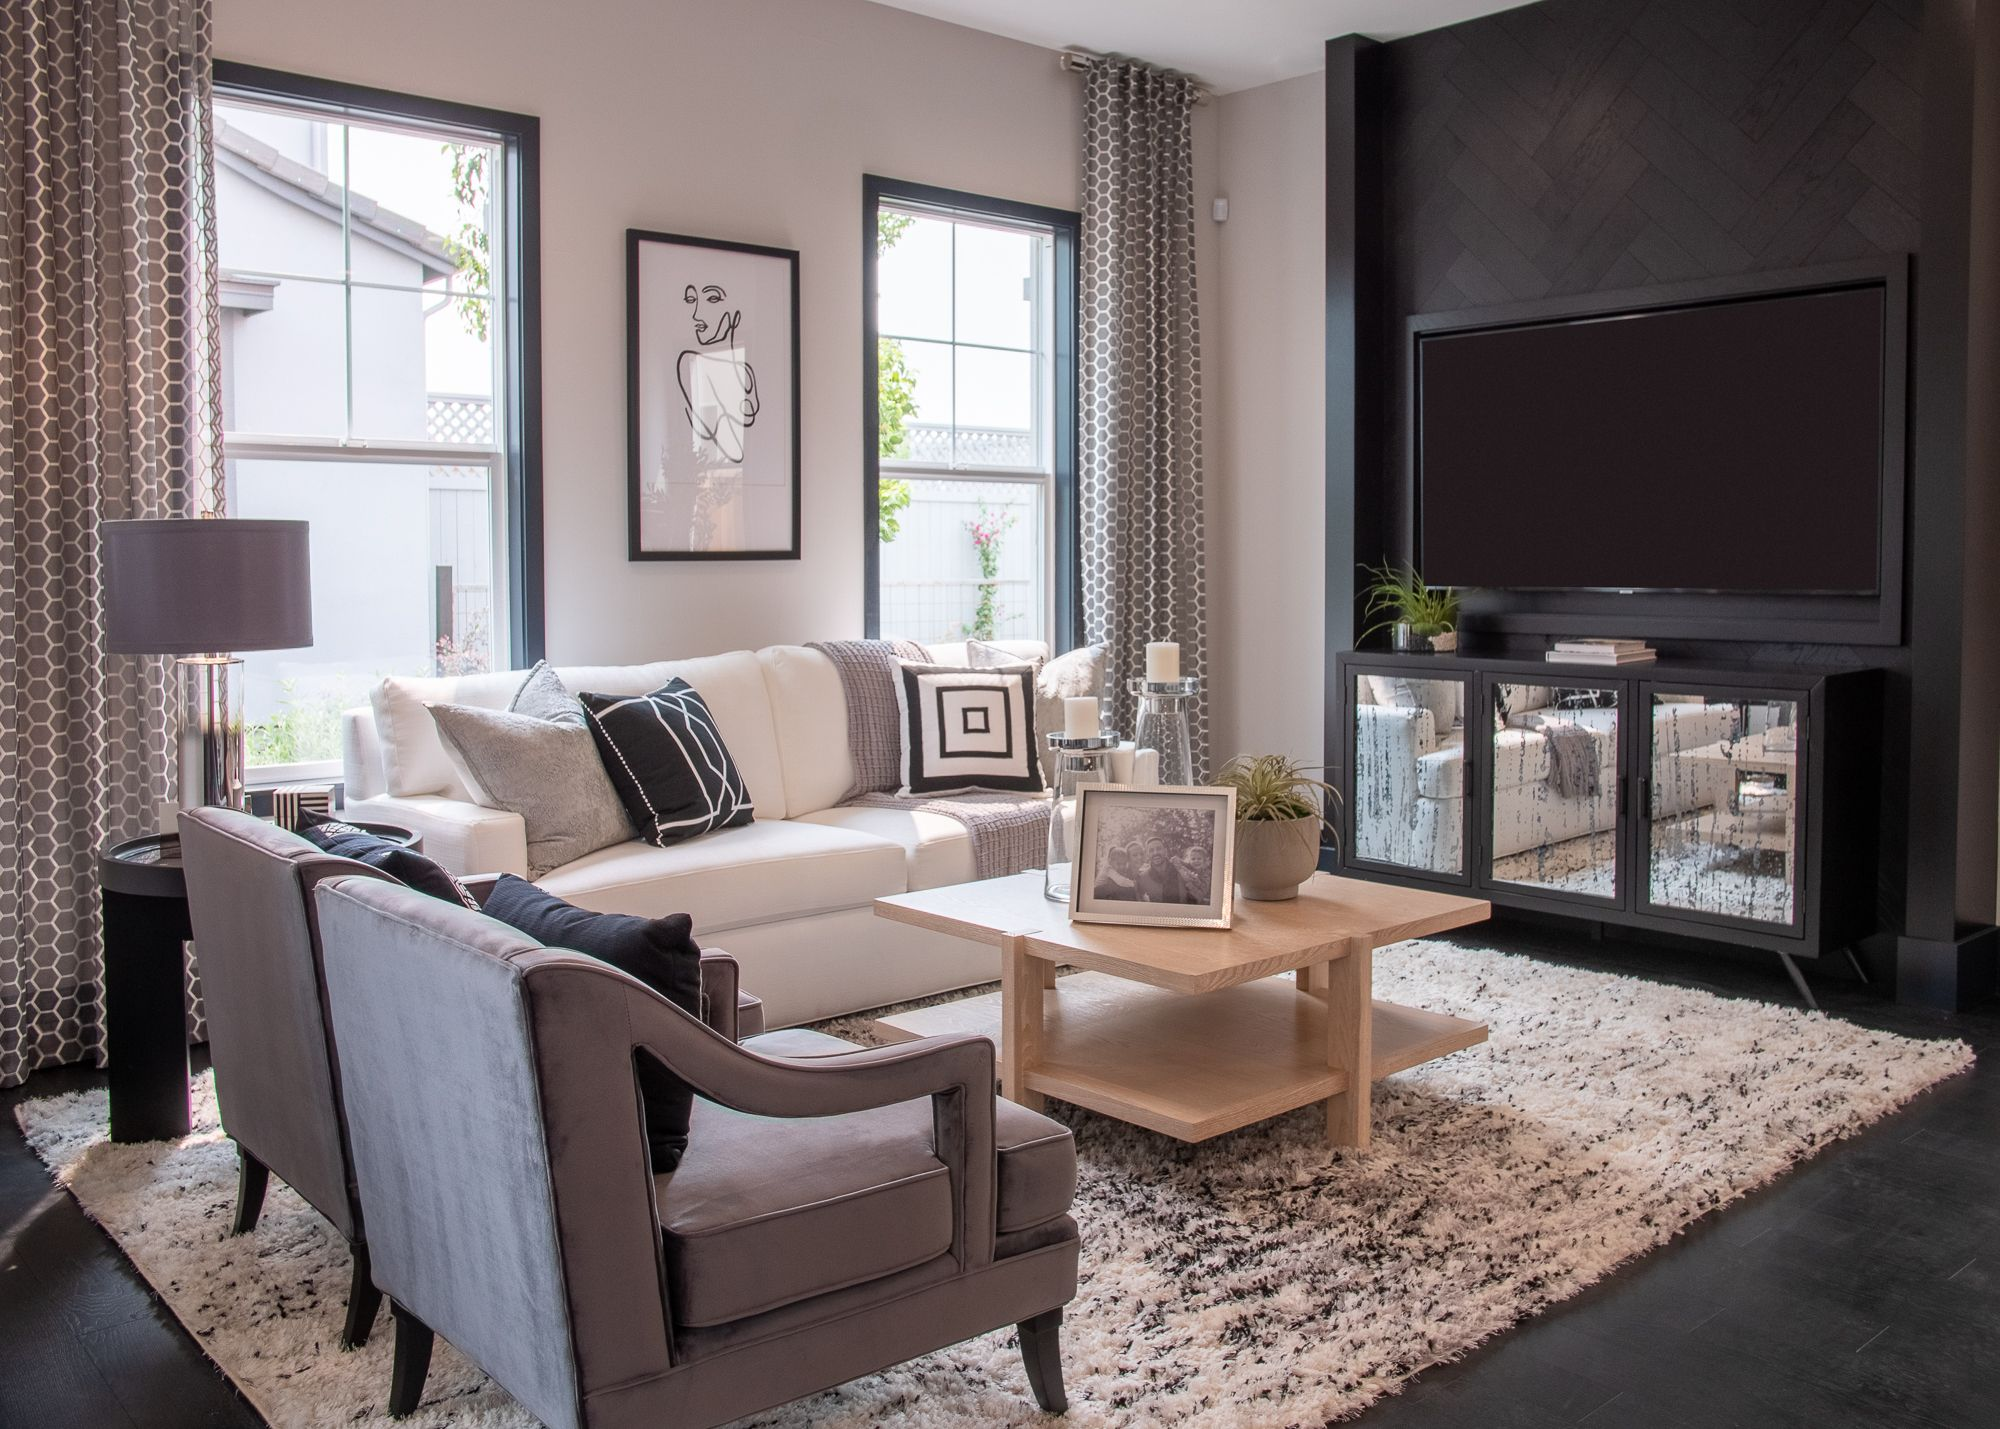 Living Area featured in the Village Courts Collection Residence 10 By BlackPine Communites